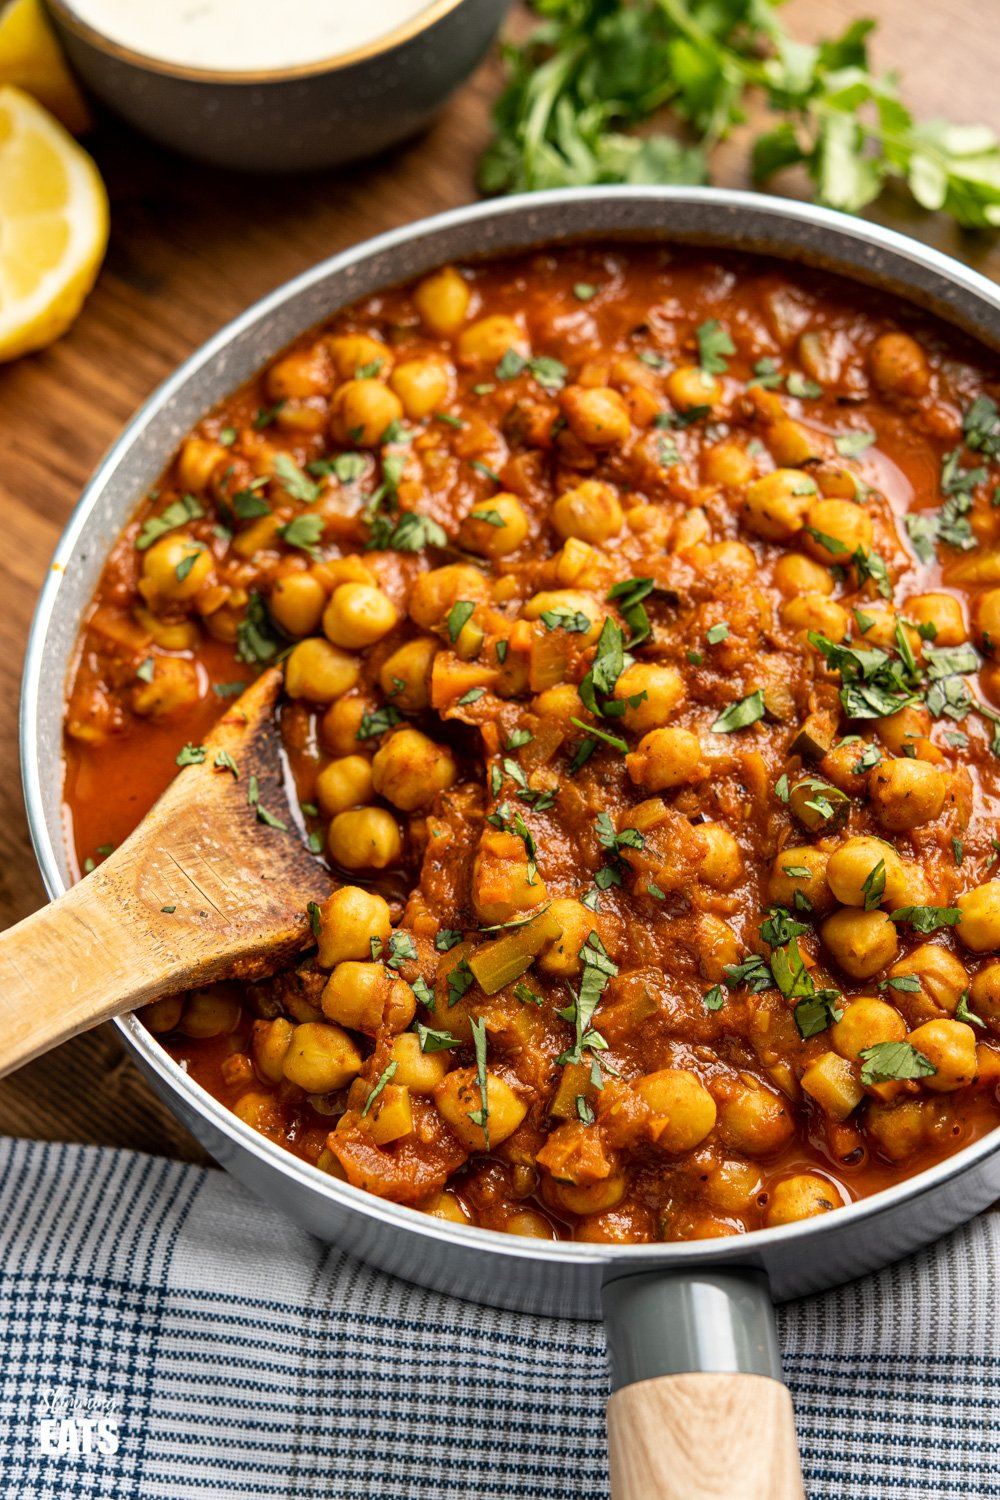 Chana Masala in a pan with wooden spoon, coriander and lemon wedges in the background on a wooden board.